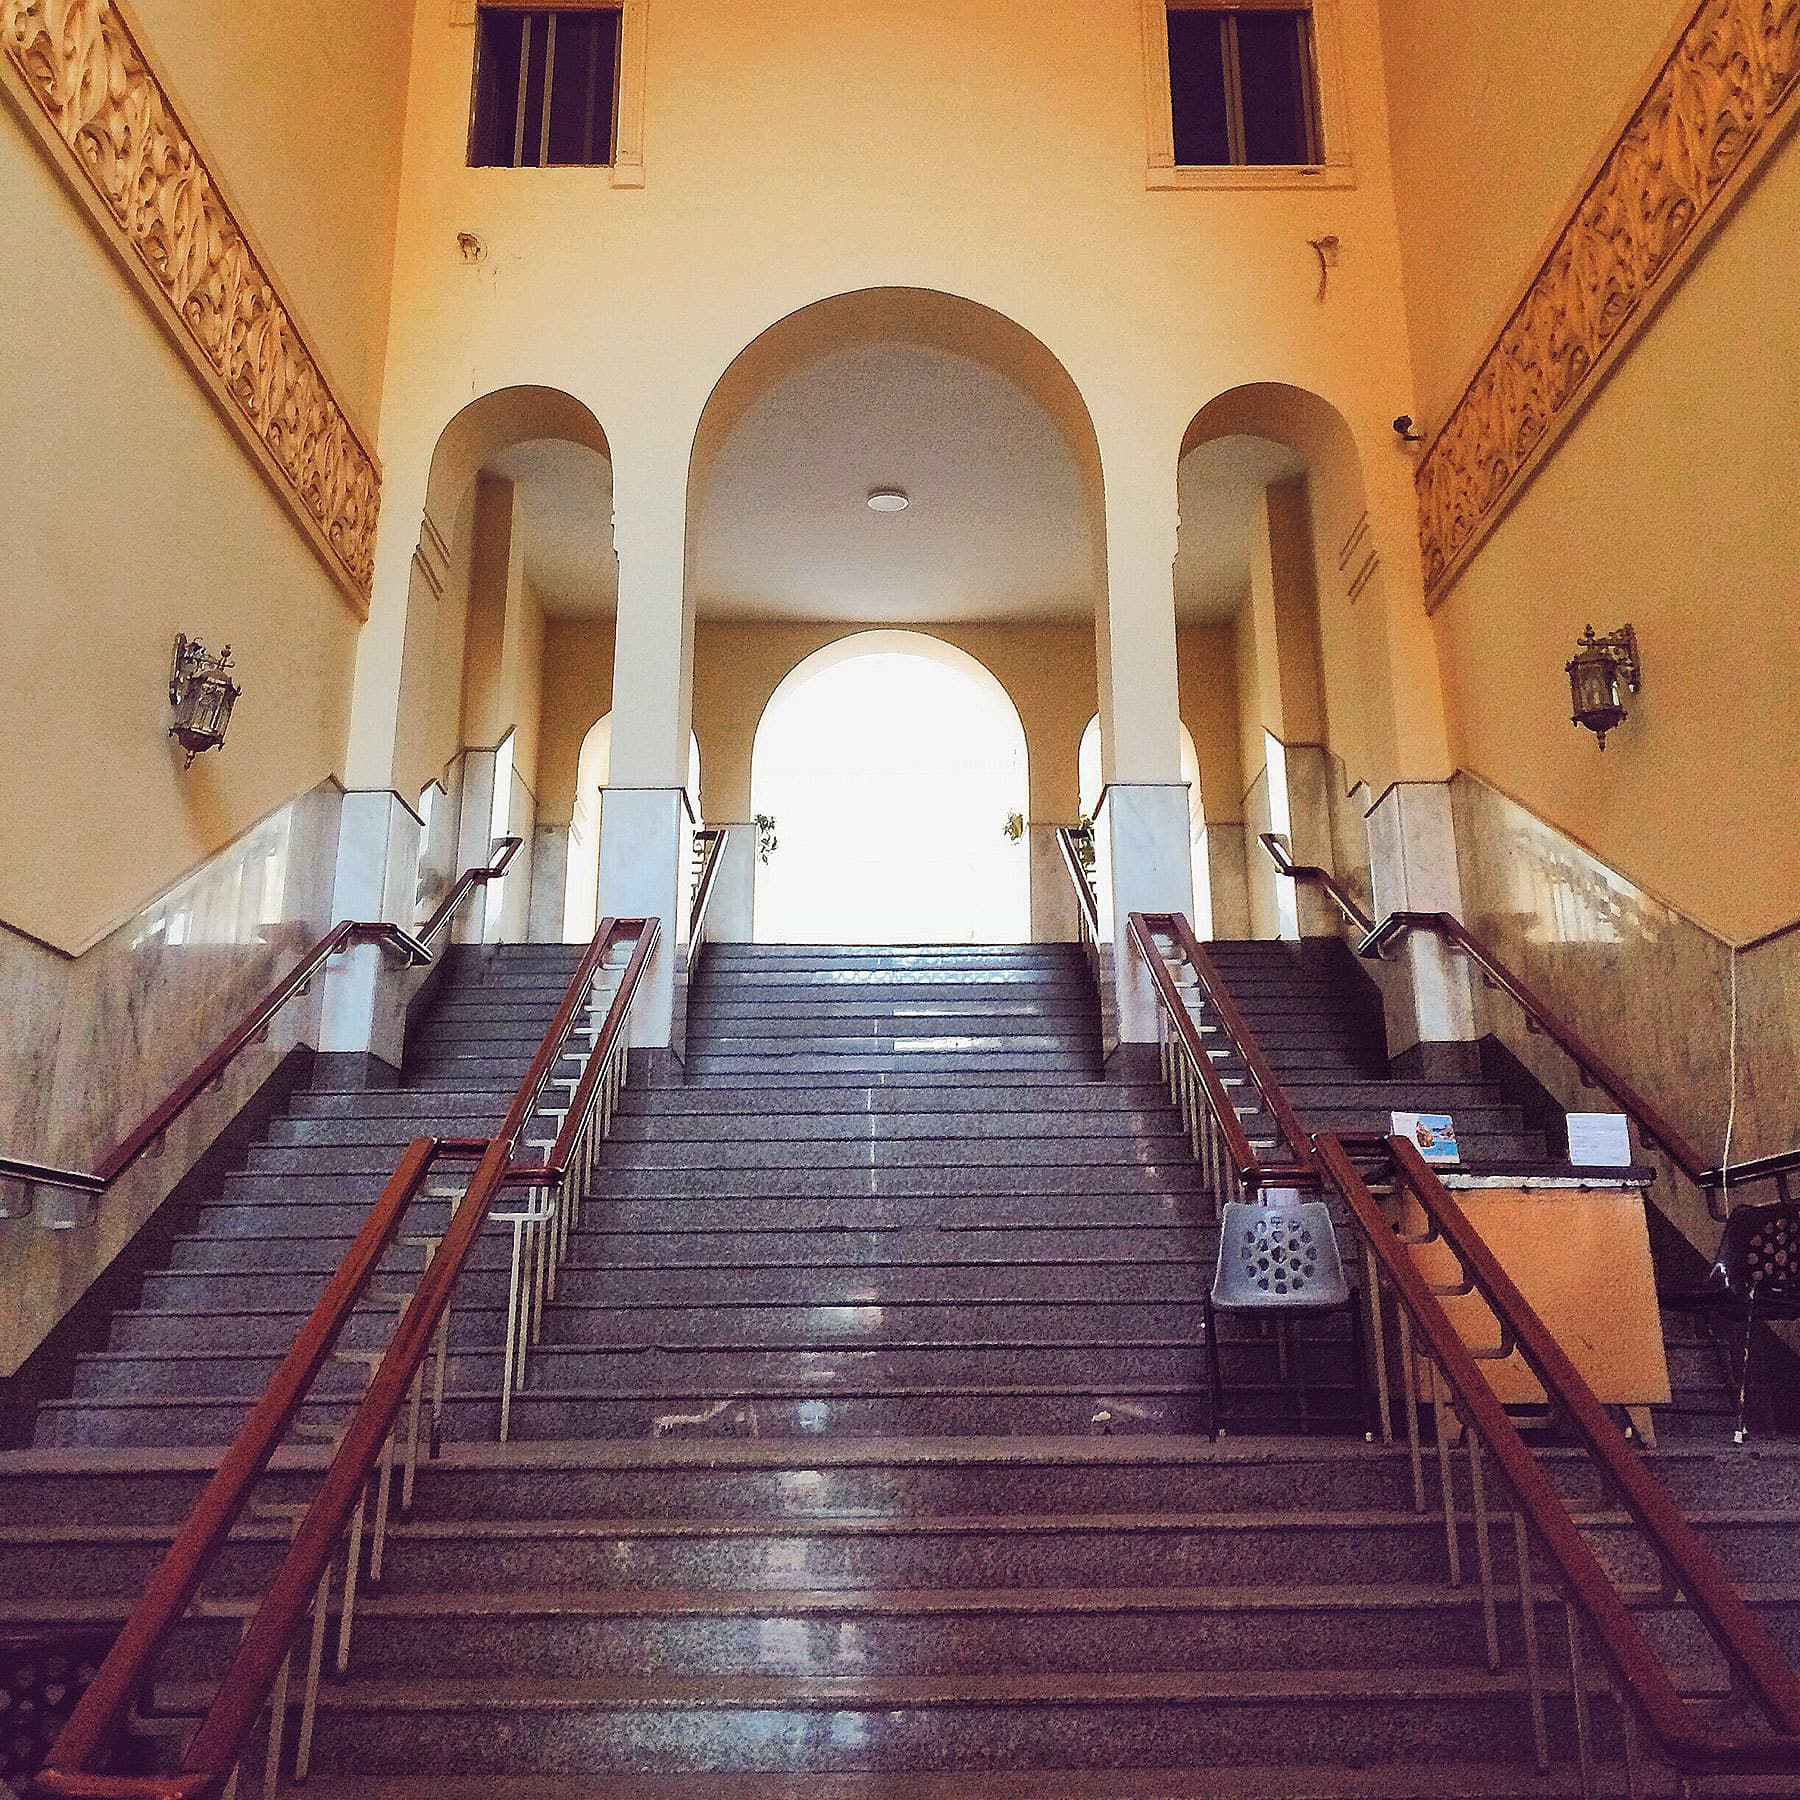 The main staircase leading up to the interior of the mosque.